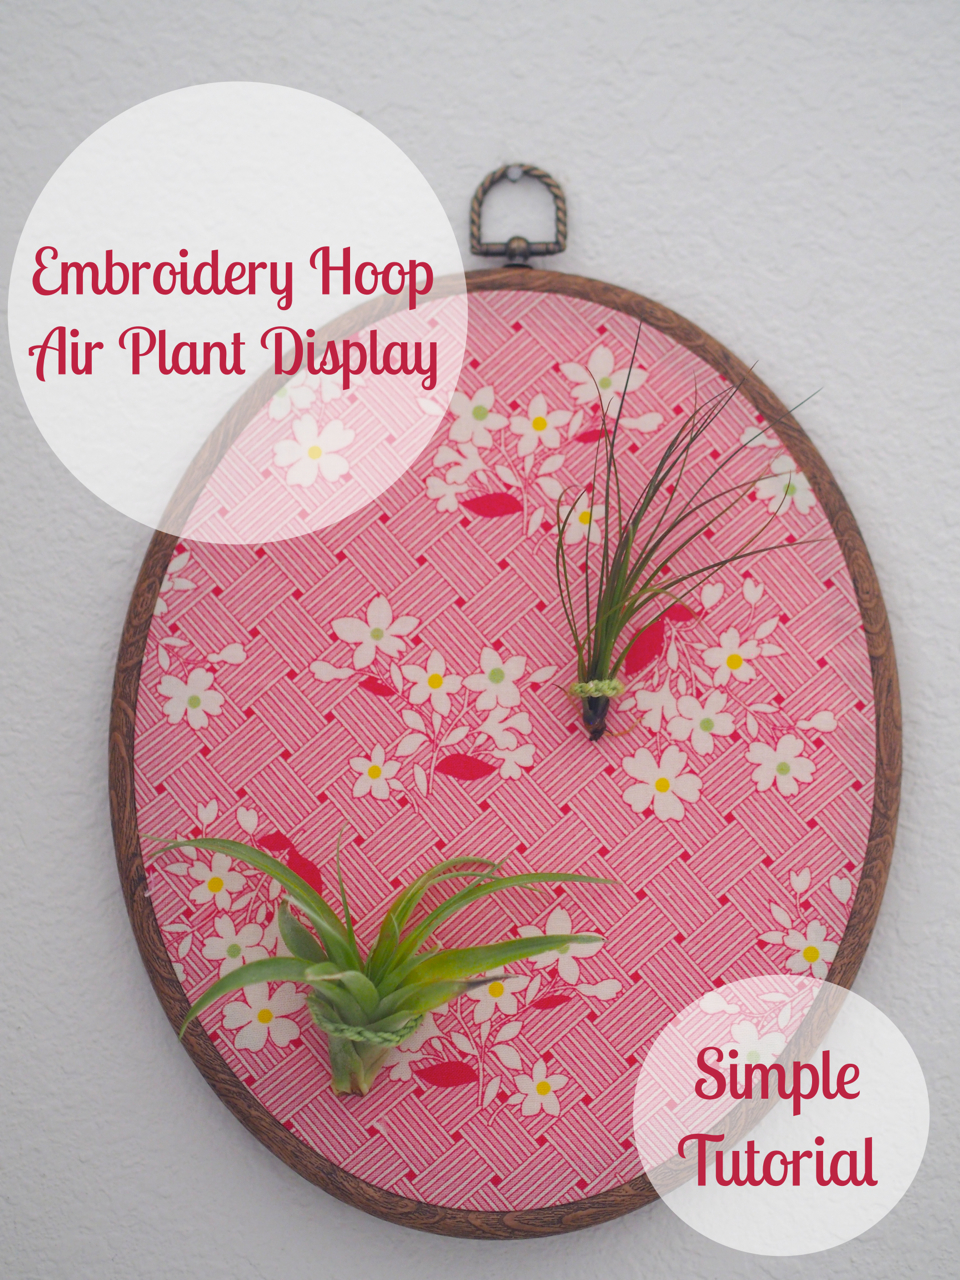 Simple And Cute Air Plant Embroidery Hoop Display Tutorial U2014 Mary Heather Browne